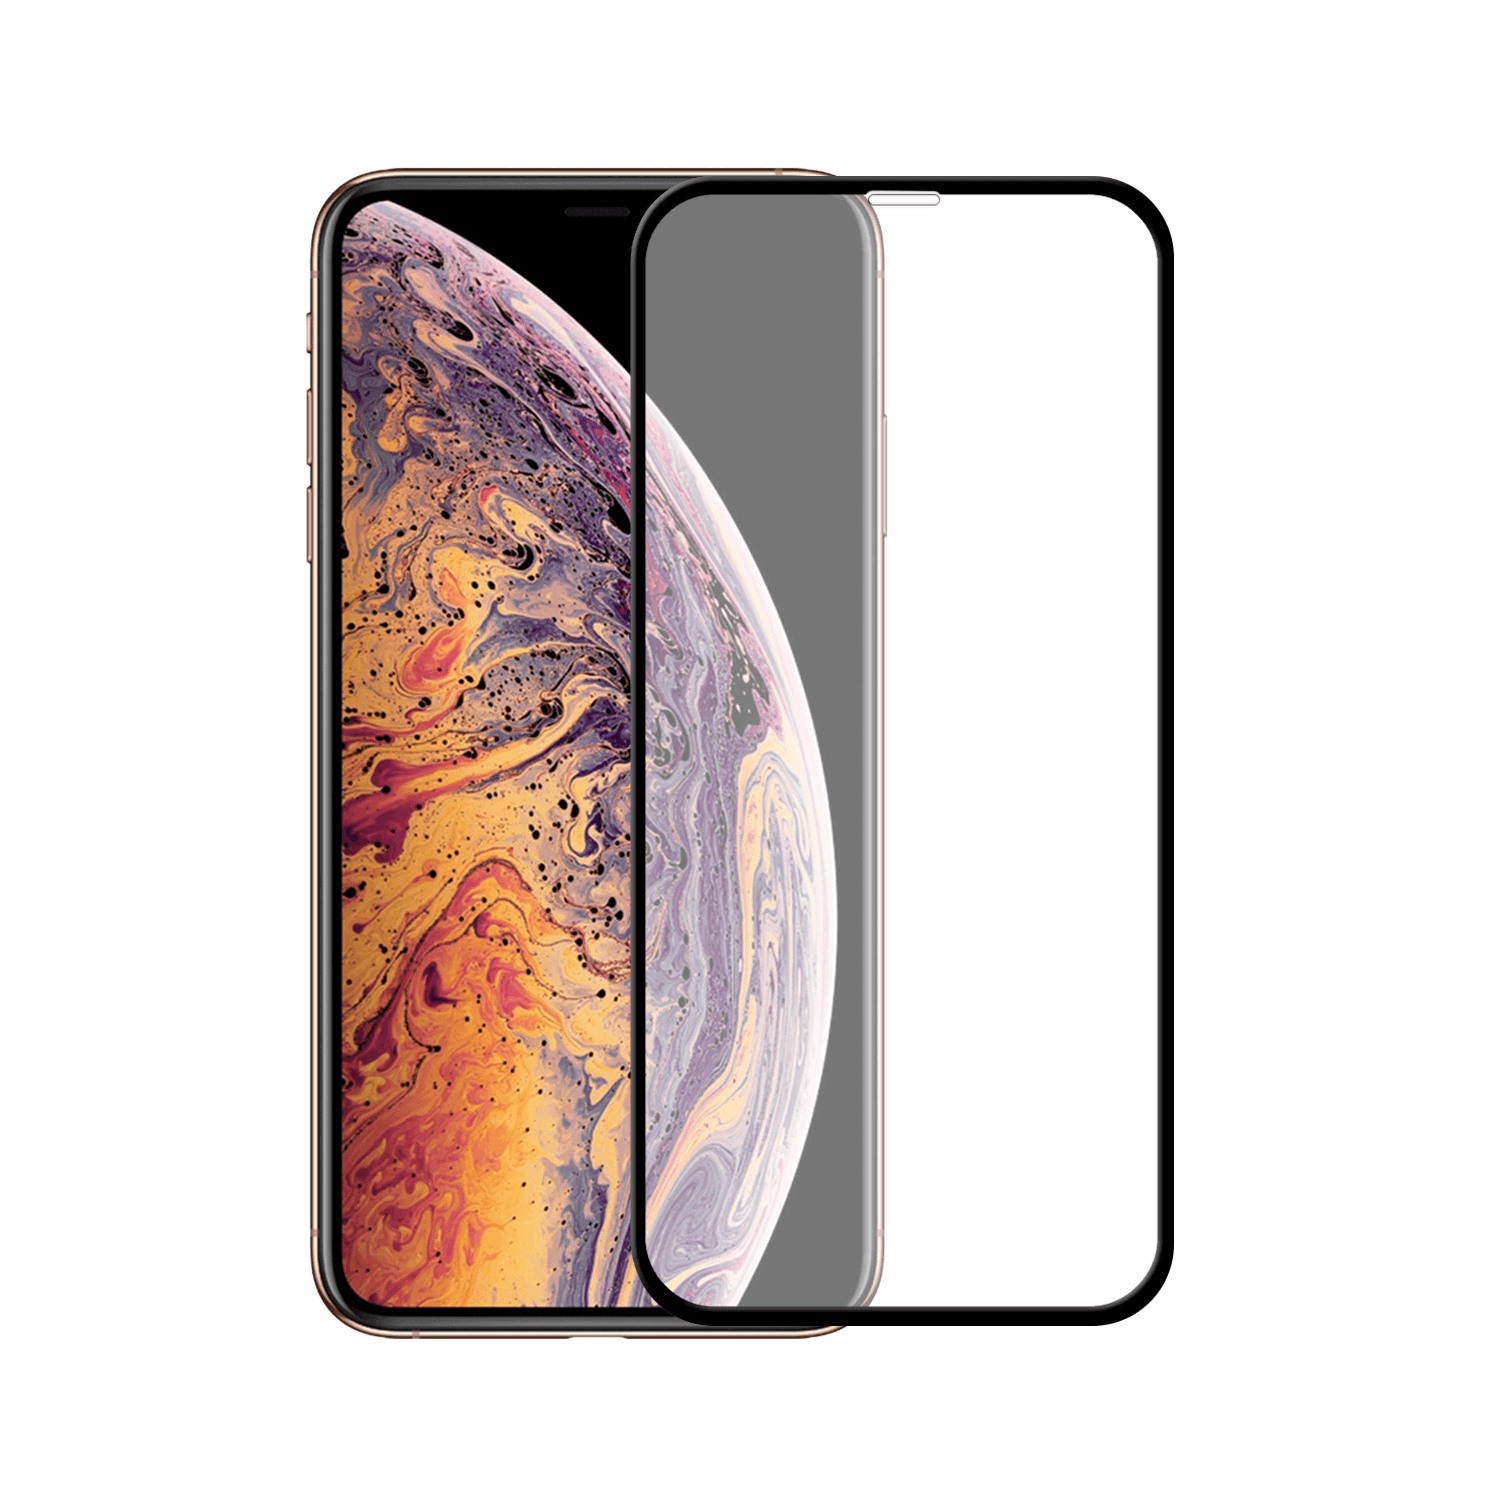 Apple Iphone XS Max/11 Pro Max Tempered Glass 10D